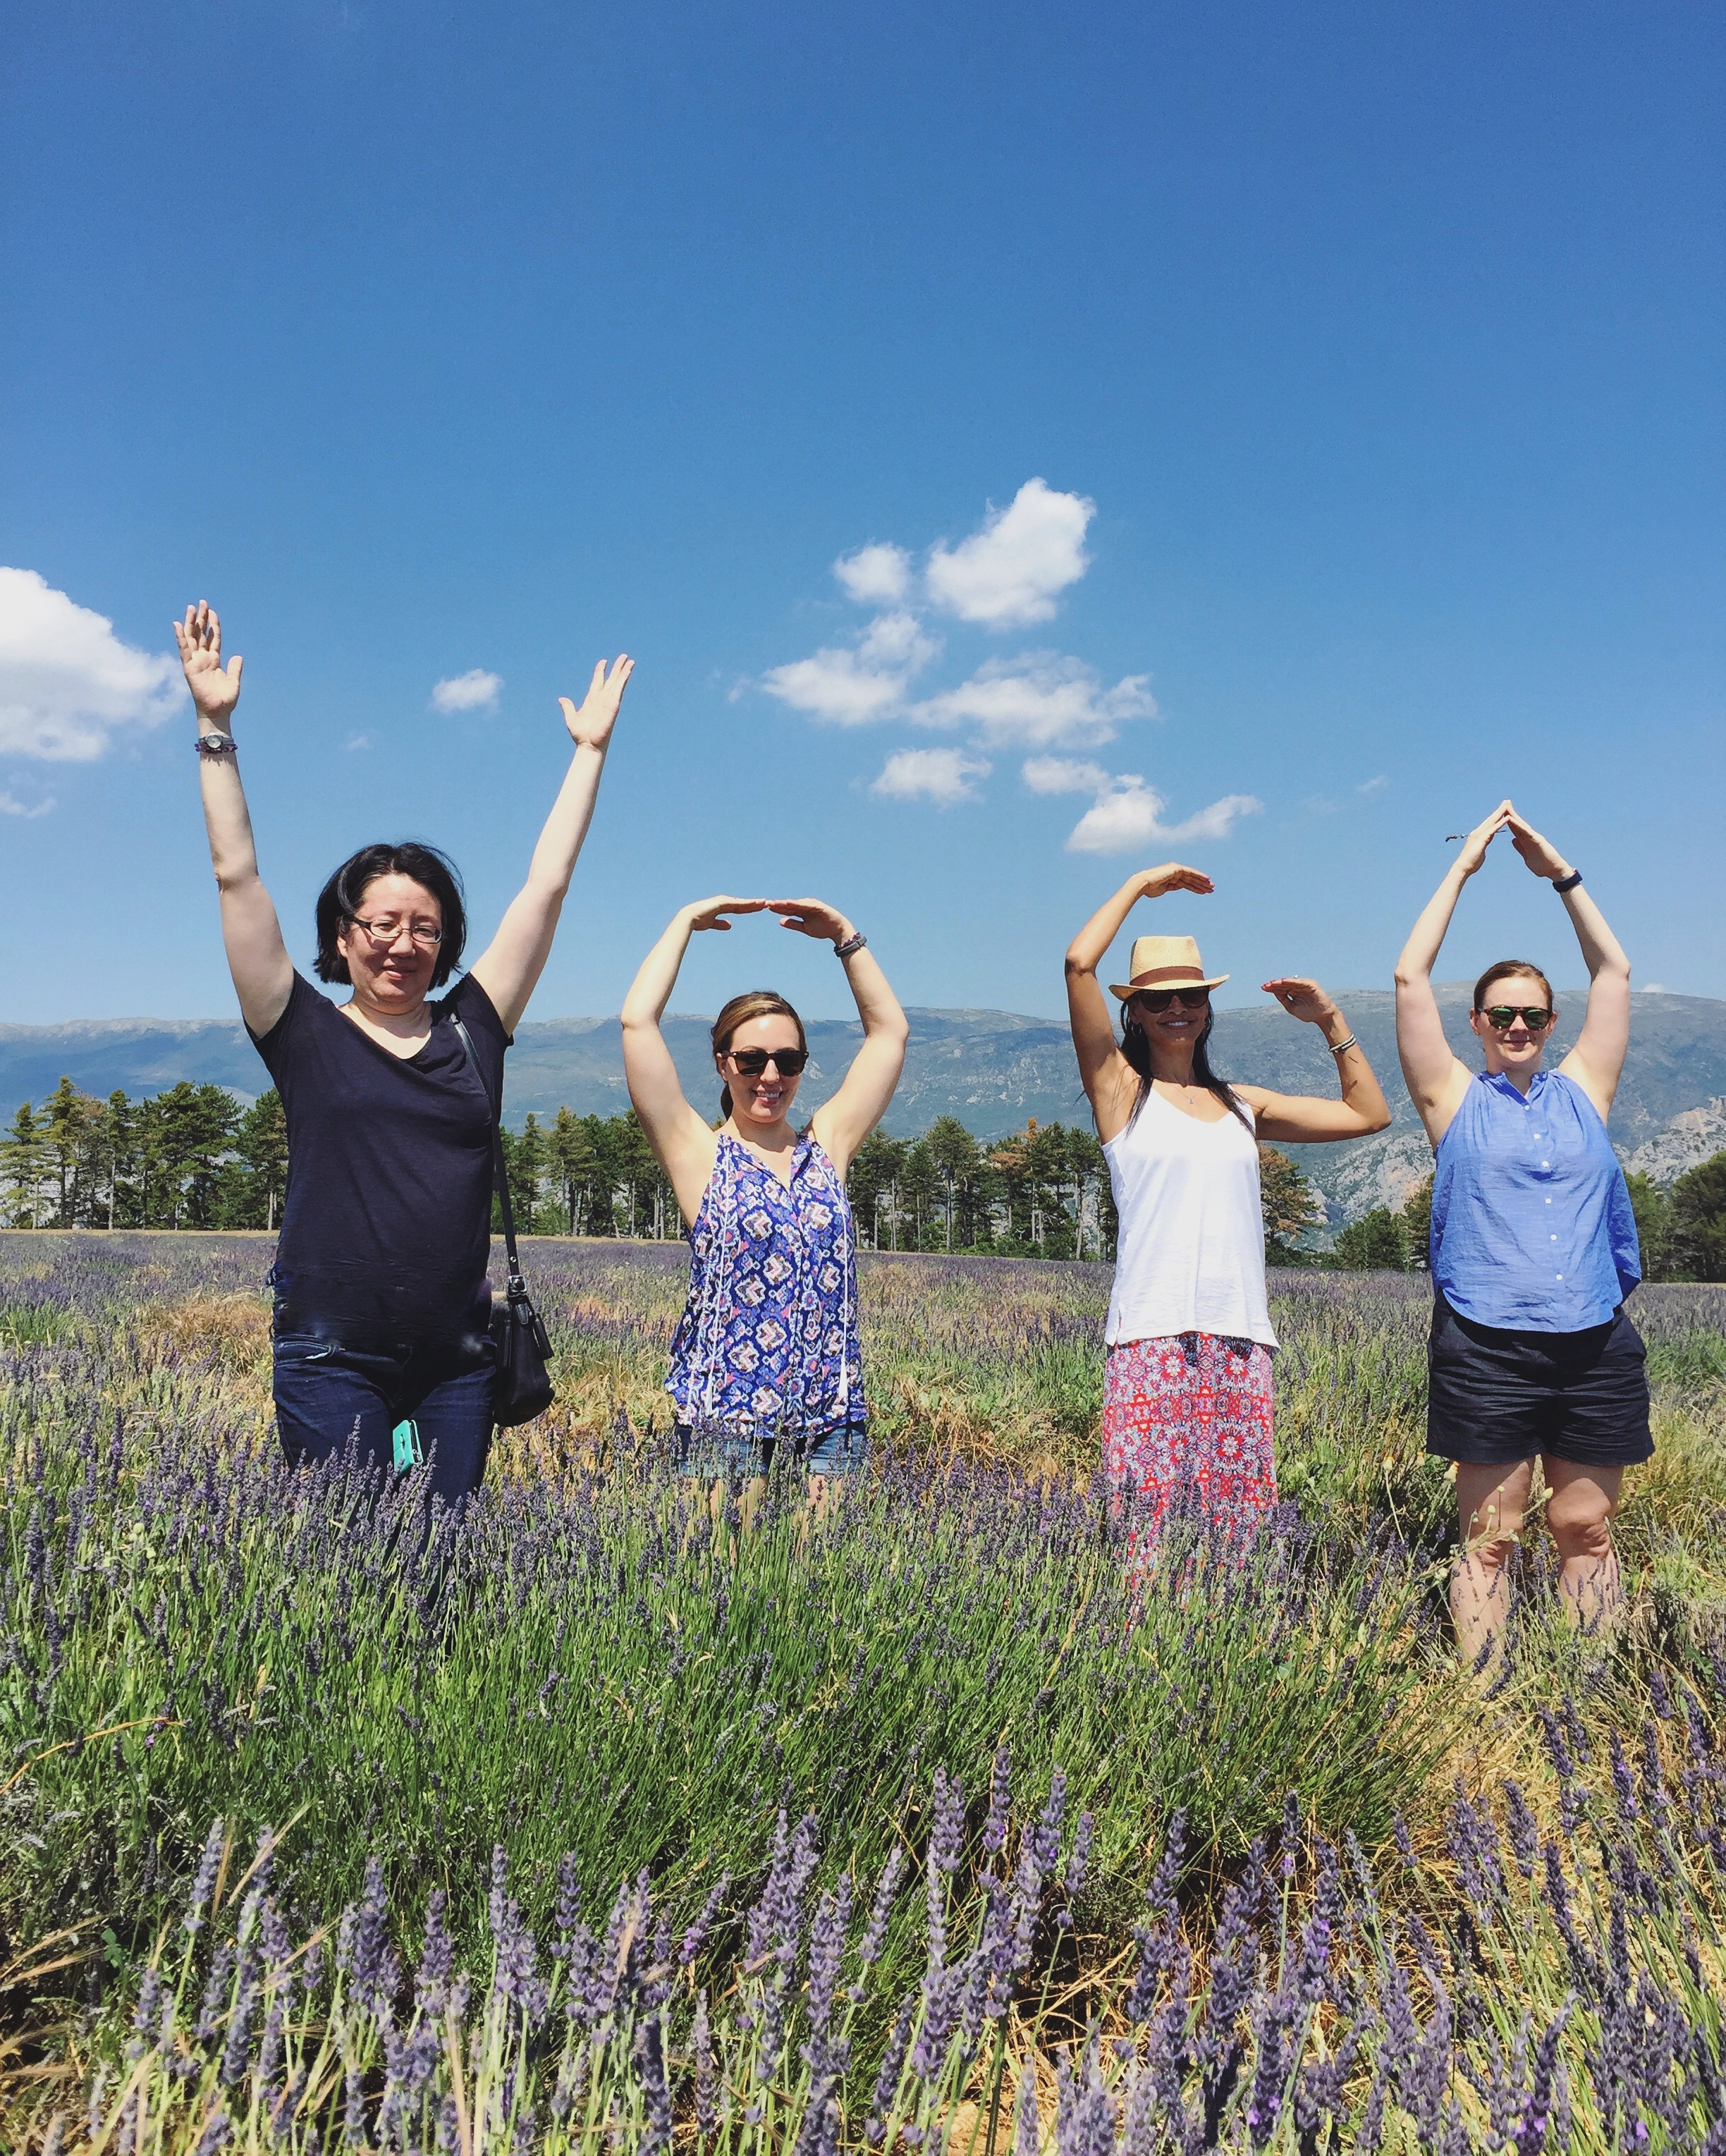 y.o.g.a in lavender | EAT.PRAY.MOVE Yoga Retreats | Provence, France